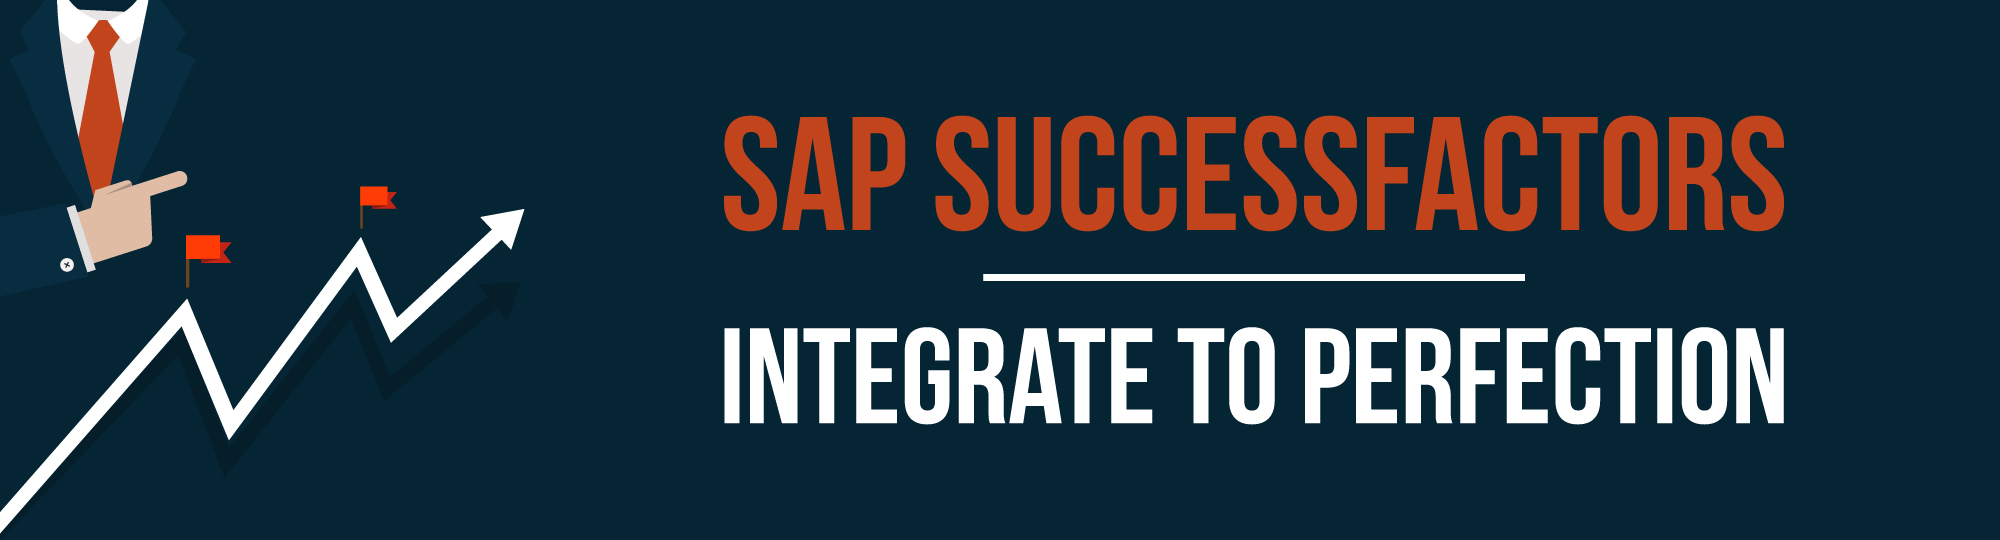 Integrating Success Factors with SAP HCM